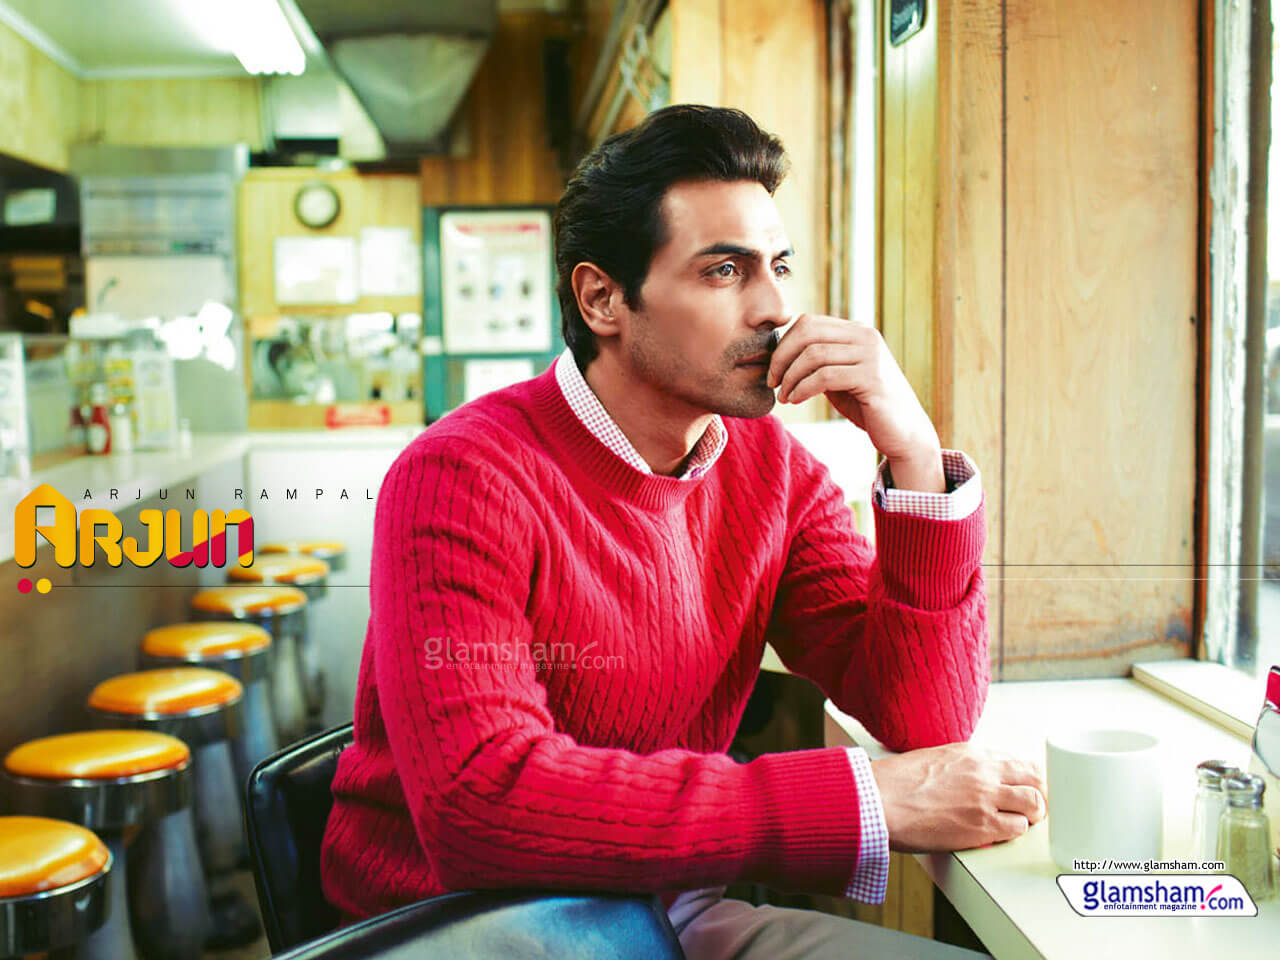 Arjun Rampal Wife, Girlfriend, Age, Daughters, Net Worth, Height, Biography, Family, Image(photo), Mother, Child, Date Of Birth, Hairstyle, Wiki, Facebook, Twitter, Instagram, Imdb (49)